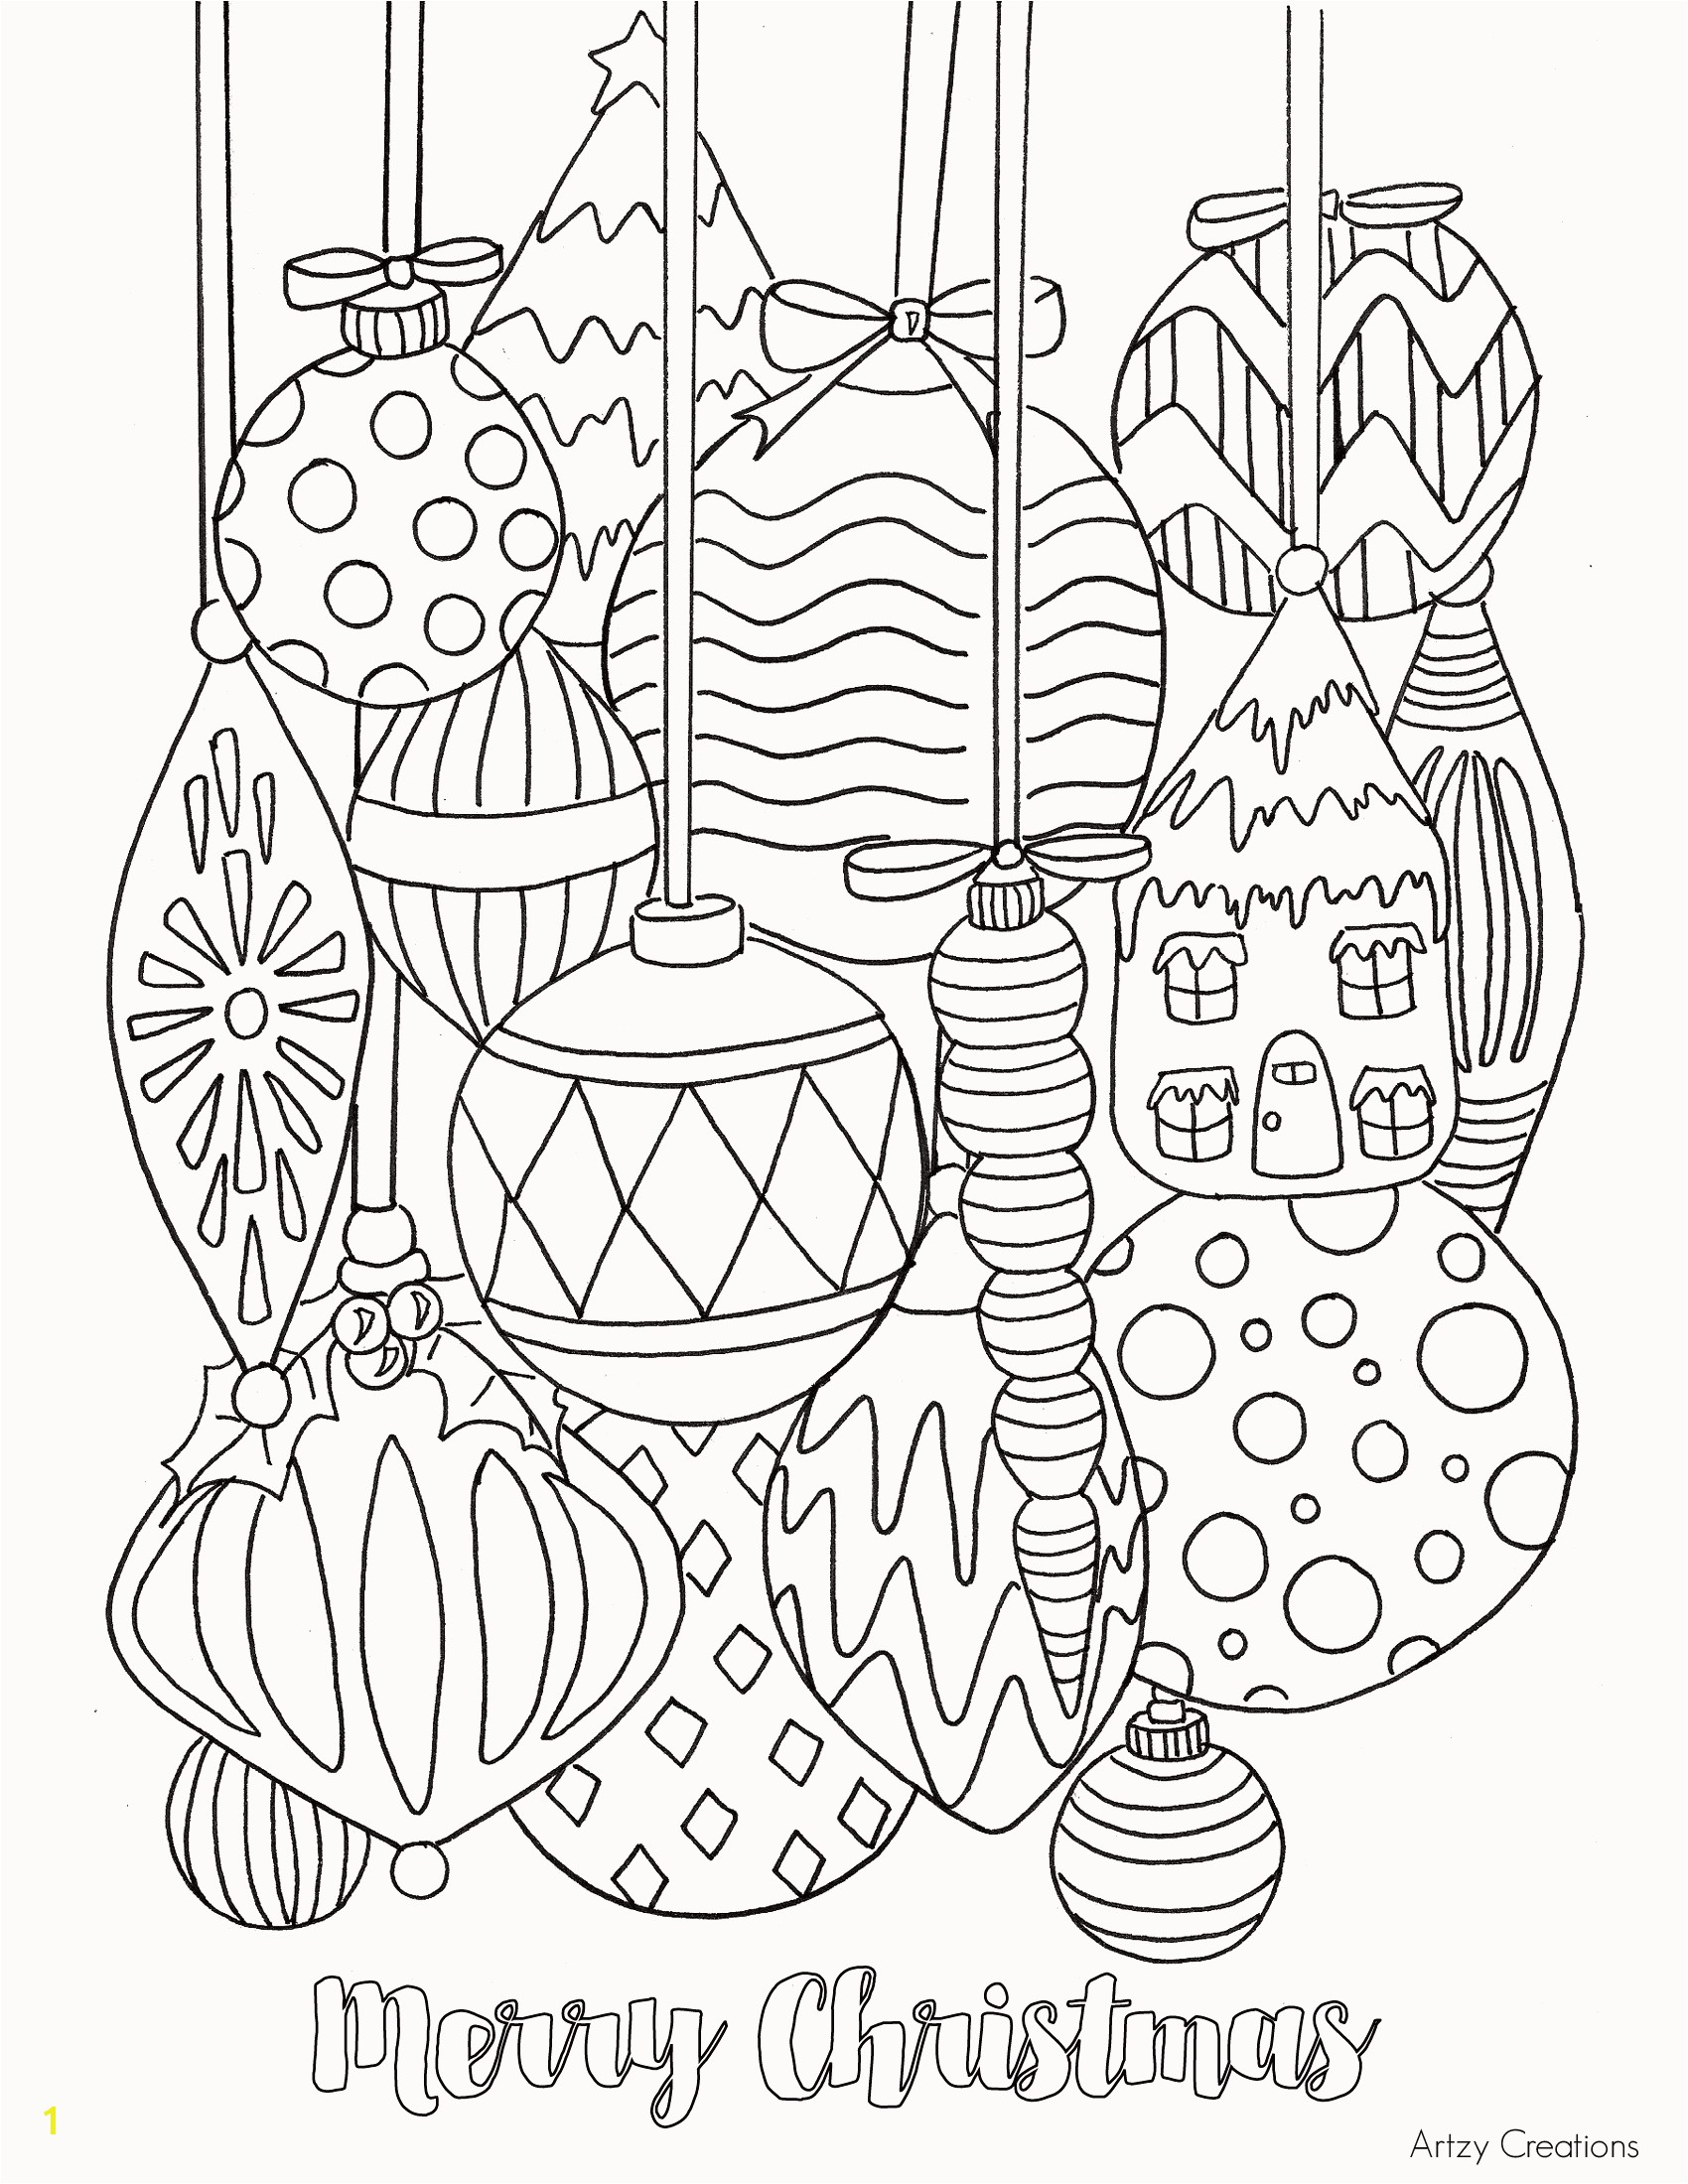 The Wiggles Coloring Pages Fresh Free Printable Coloring Sheets Beautiful Christmas Coloring Pages 25 Inspirational